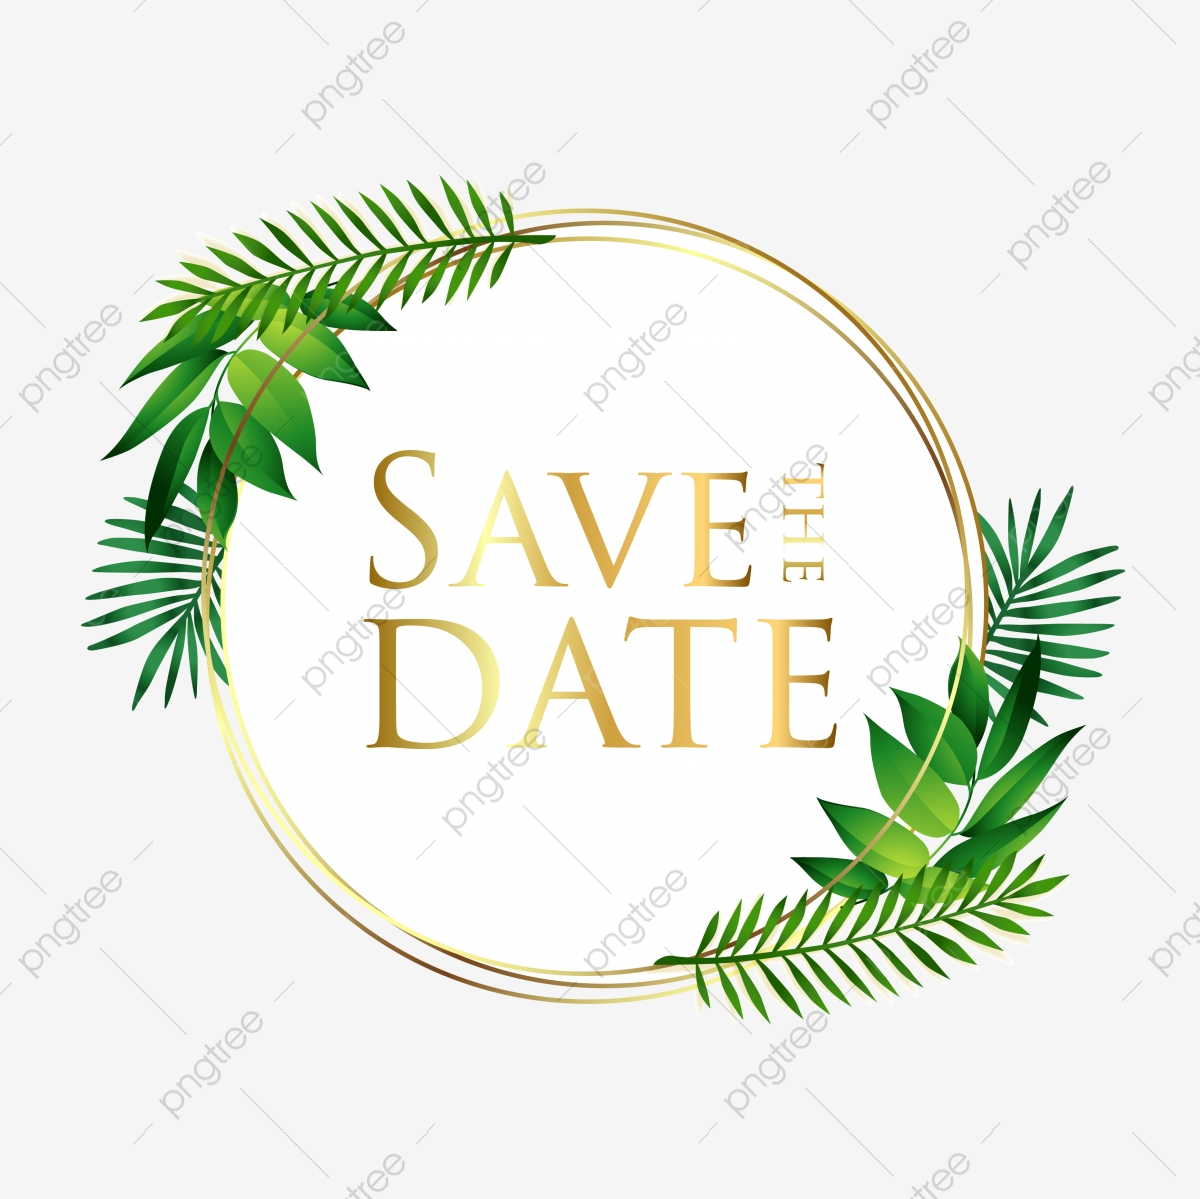 Classic Save The Date Invitation Label With Tropical Leaves Lovely Date Celebration Png And Vector With Transparent Background For Free Download Create an authentic tropical island atmosphere! https pngtree com freepng classic save the date invitation label with tropical leaves 4961937 html